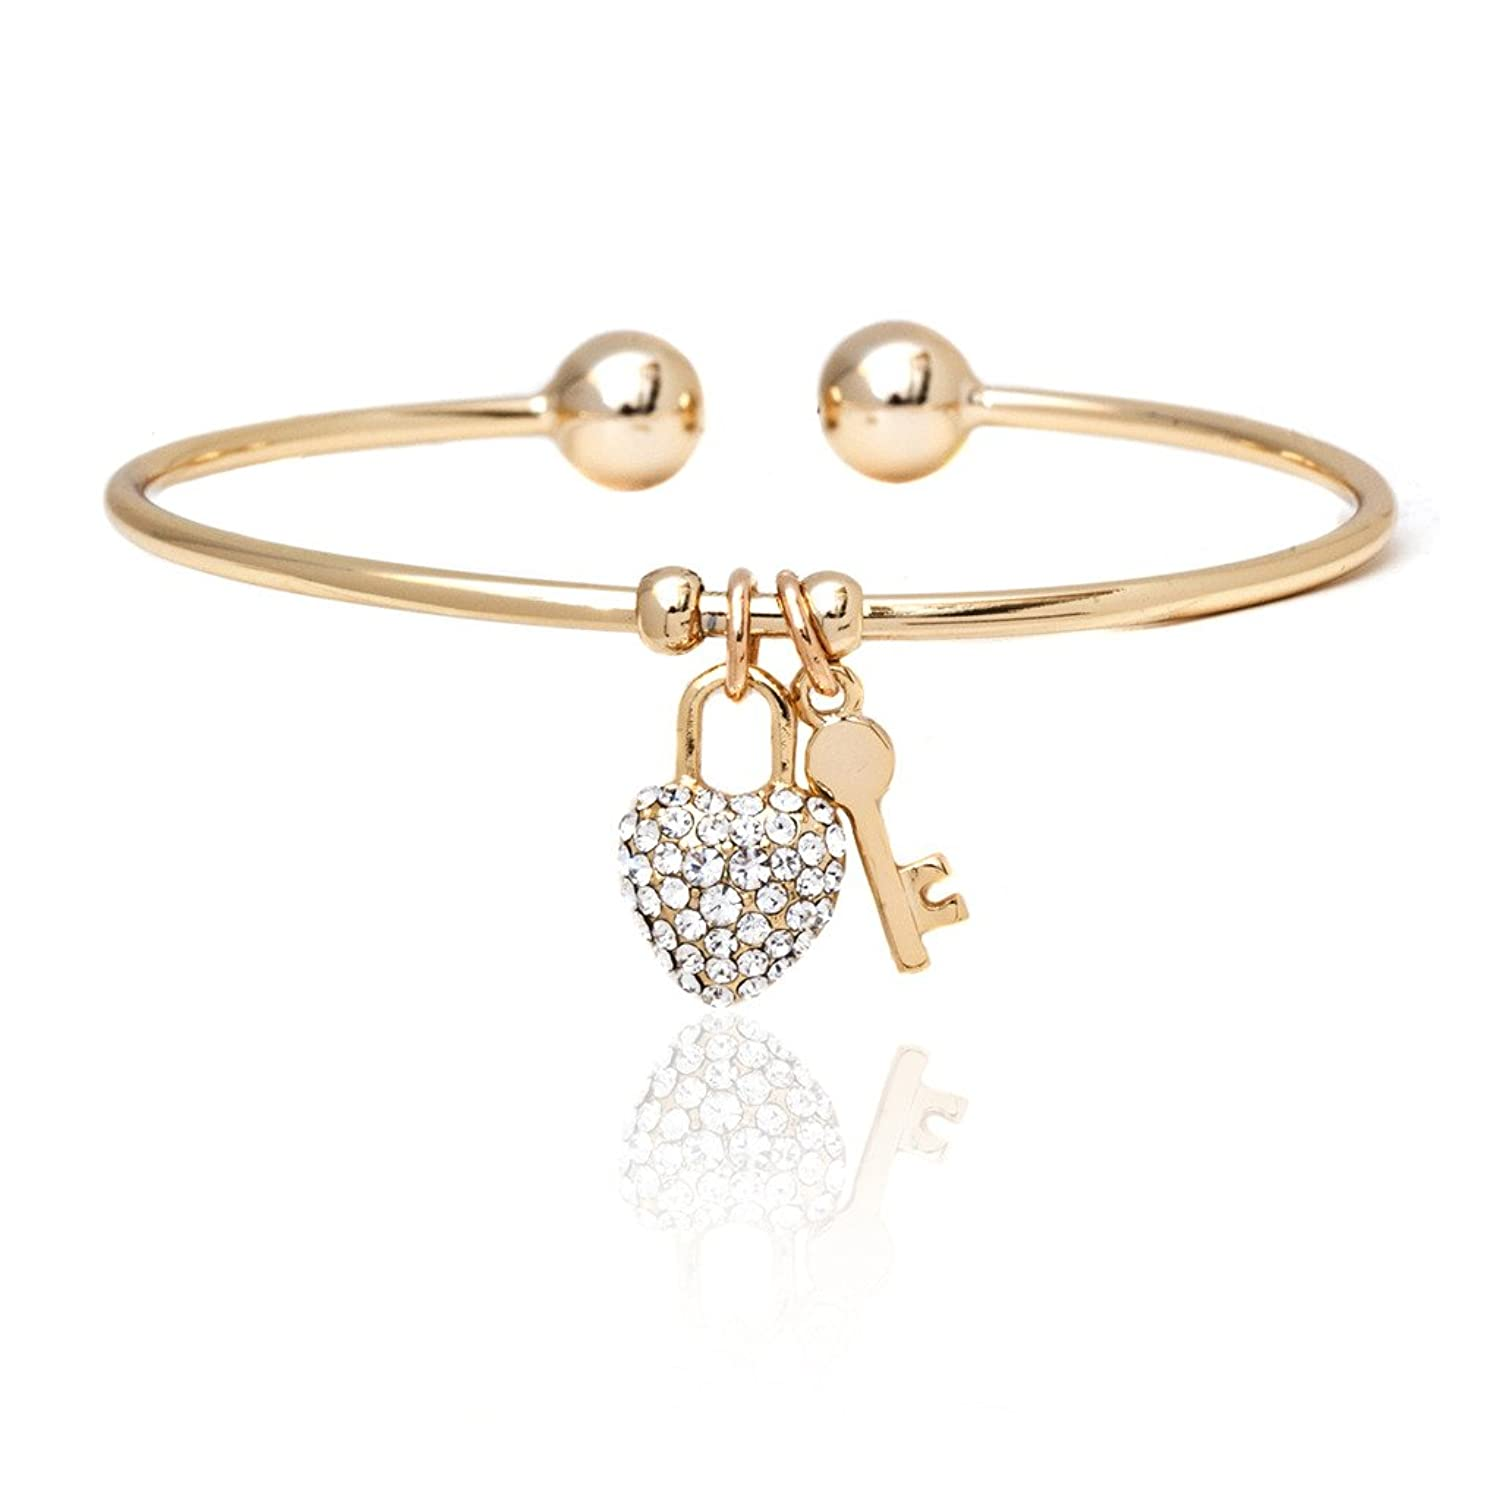 Amazon Gold and Swarovski Elements Heart and Key Charm Bangle